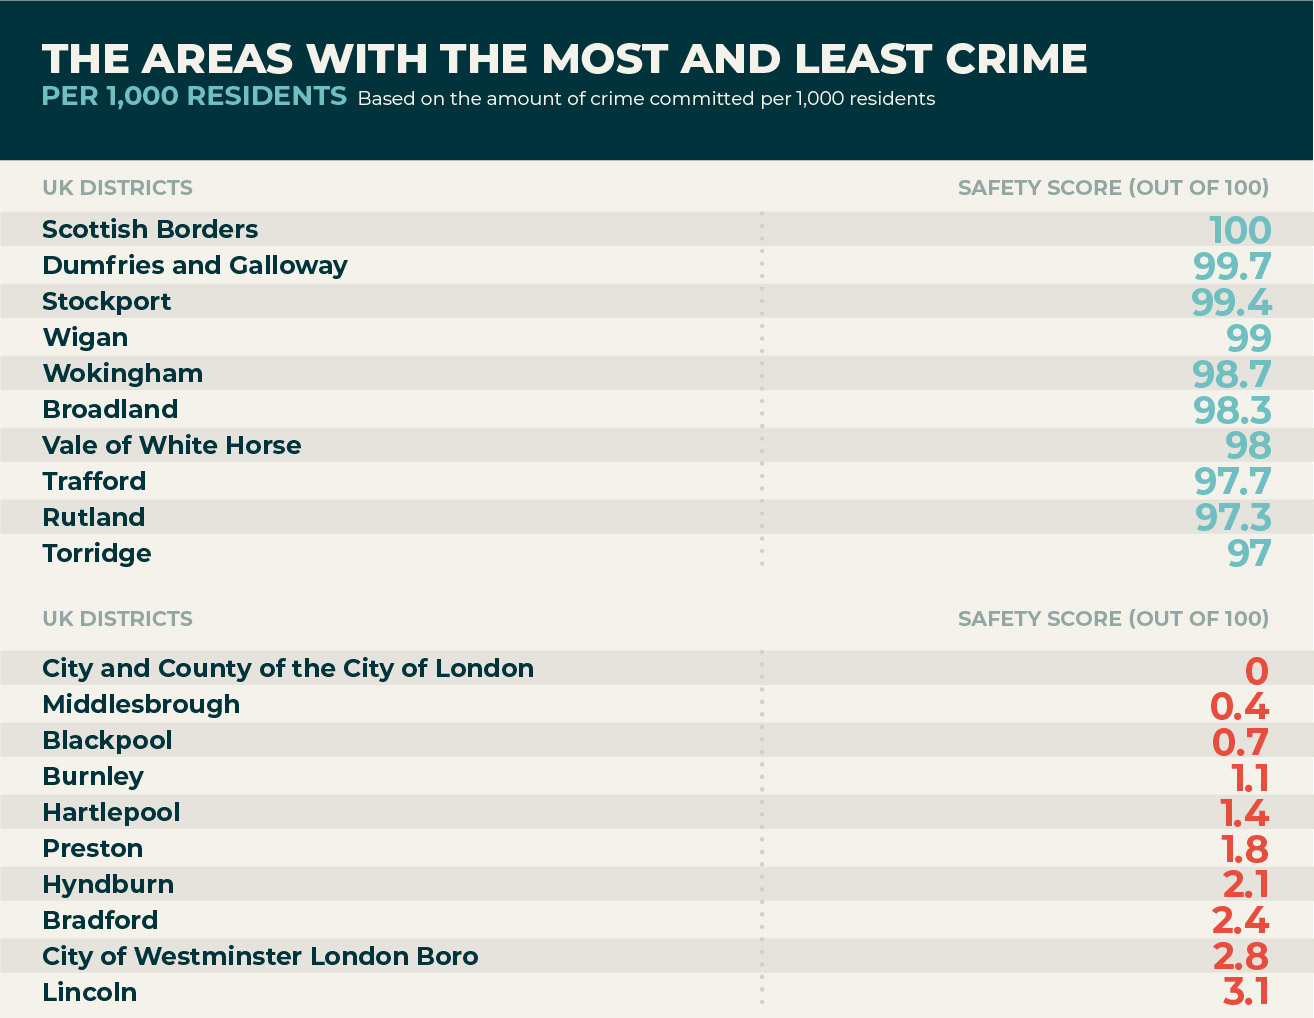 Which areas have the lowest crime rates?